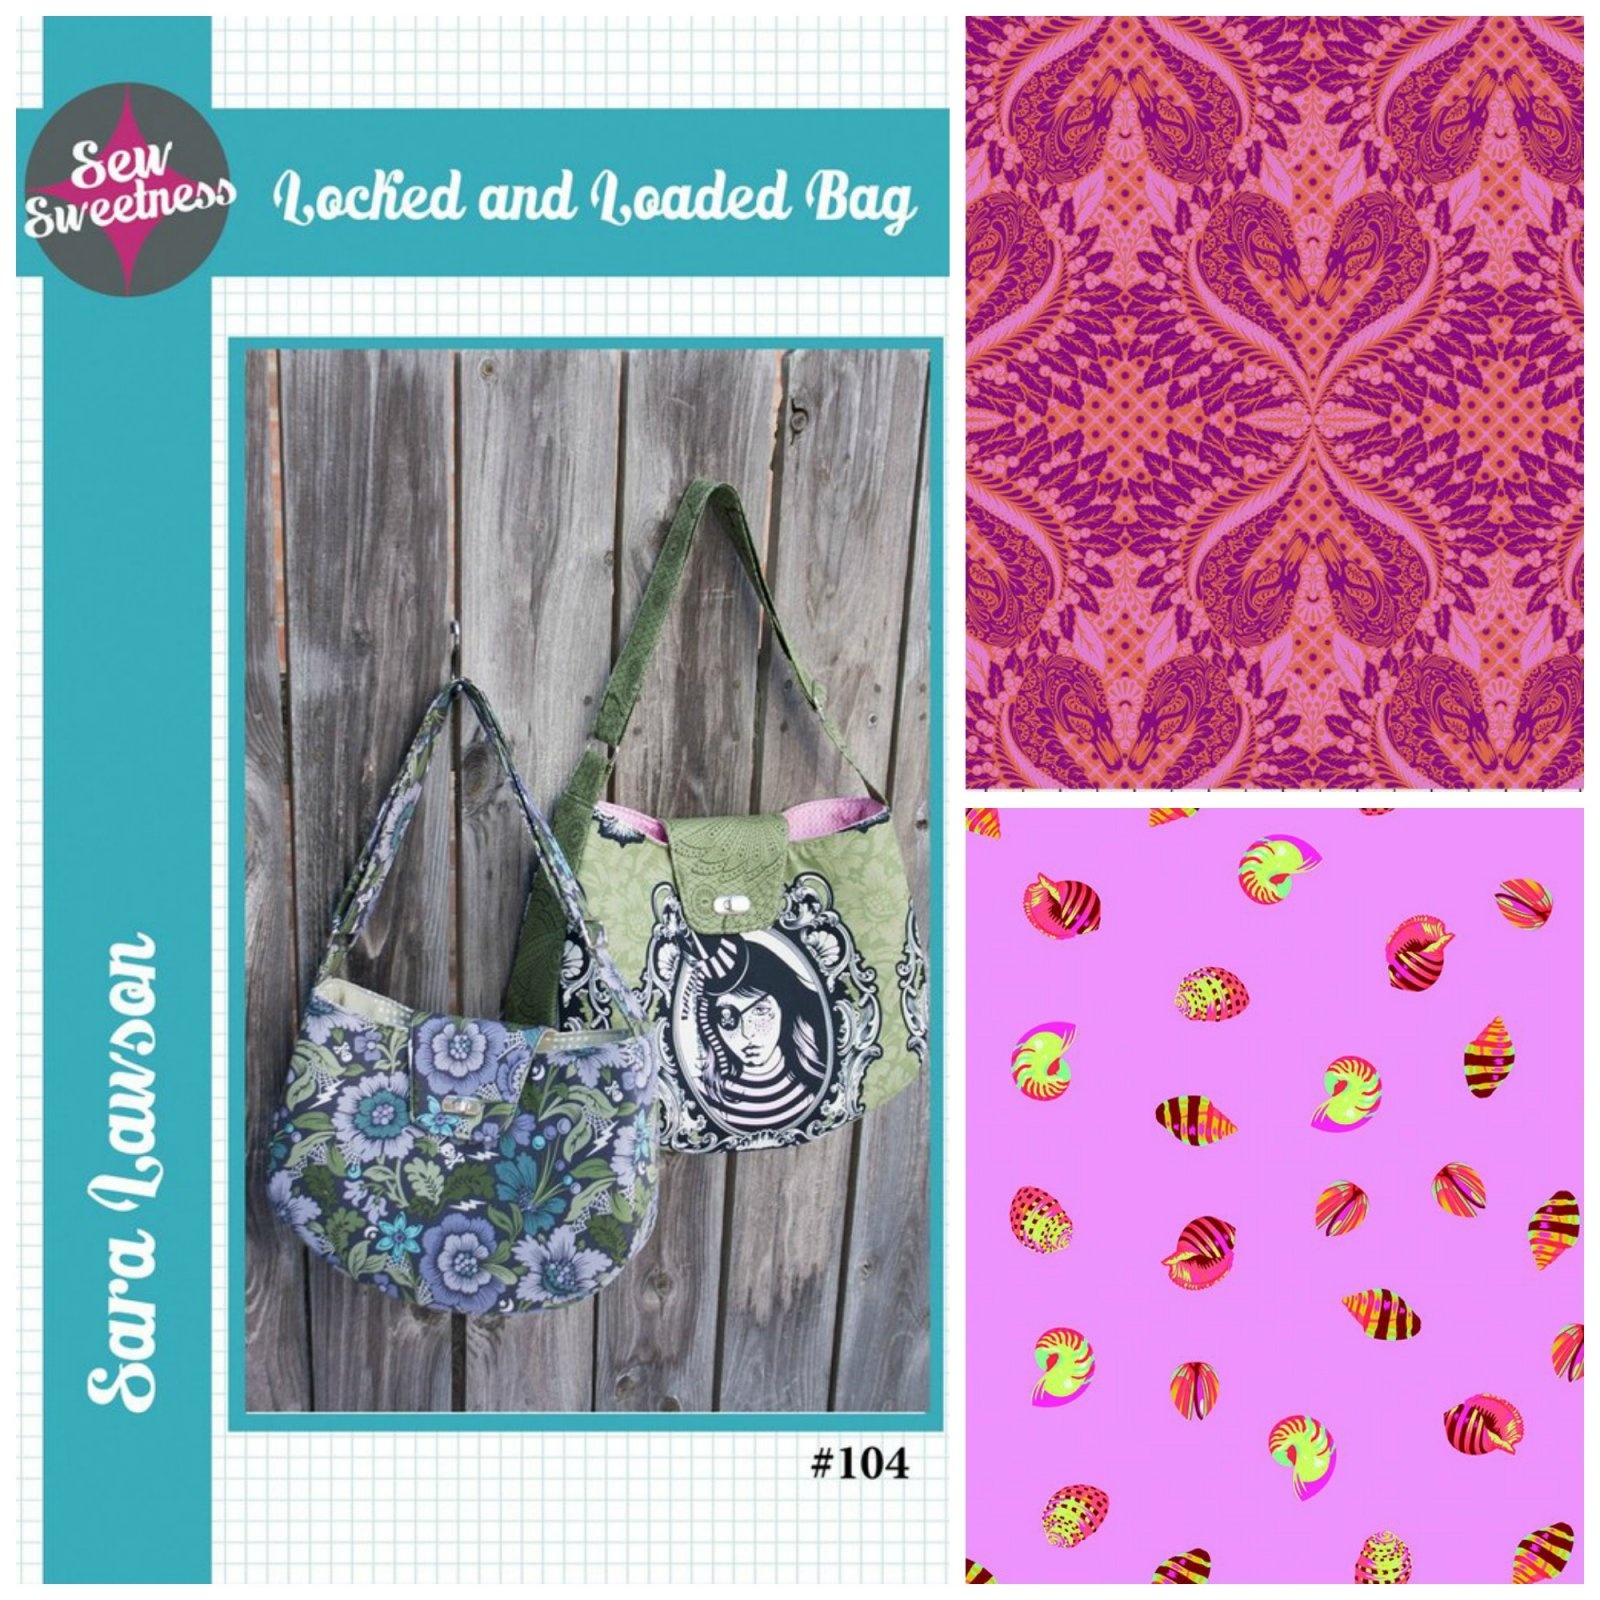 Sew Sweetness- Locked and Loaded Bag (Kit featuring Pinkerville & Zuma from Tula Pink)